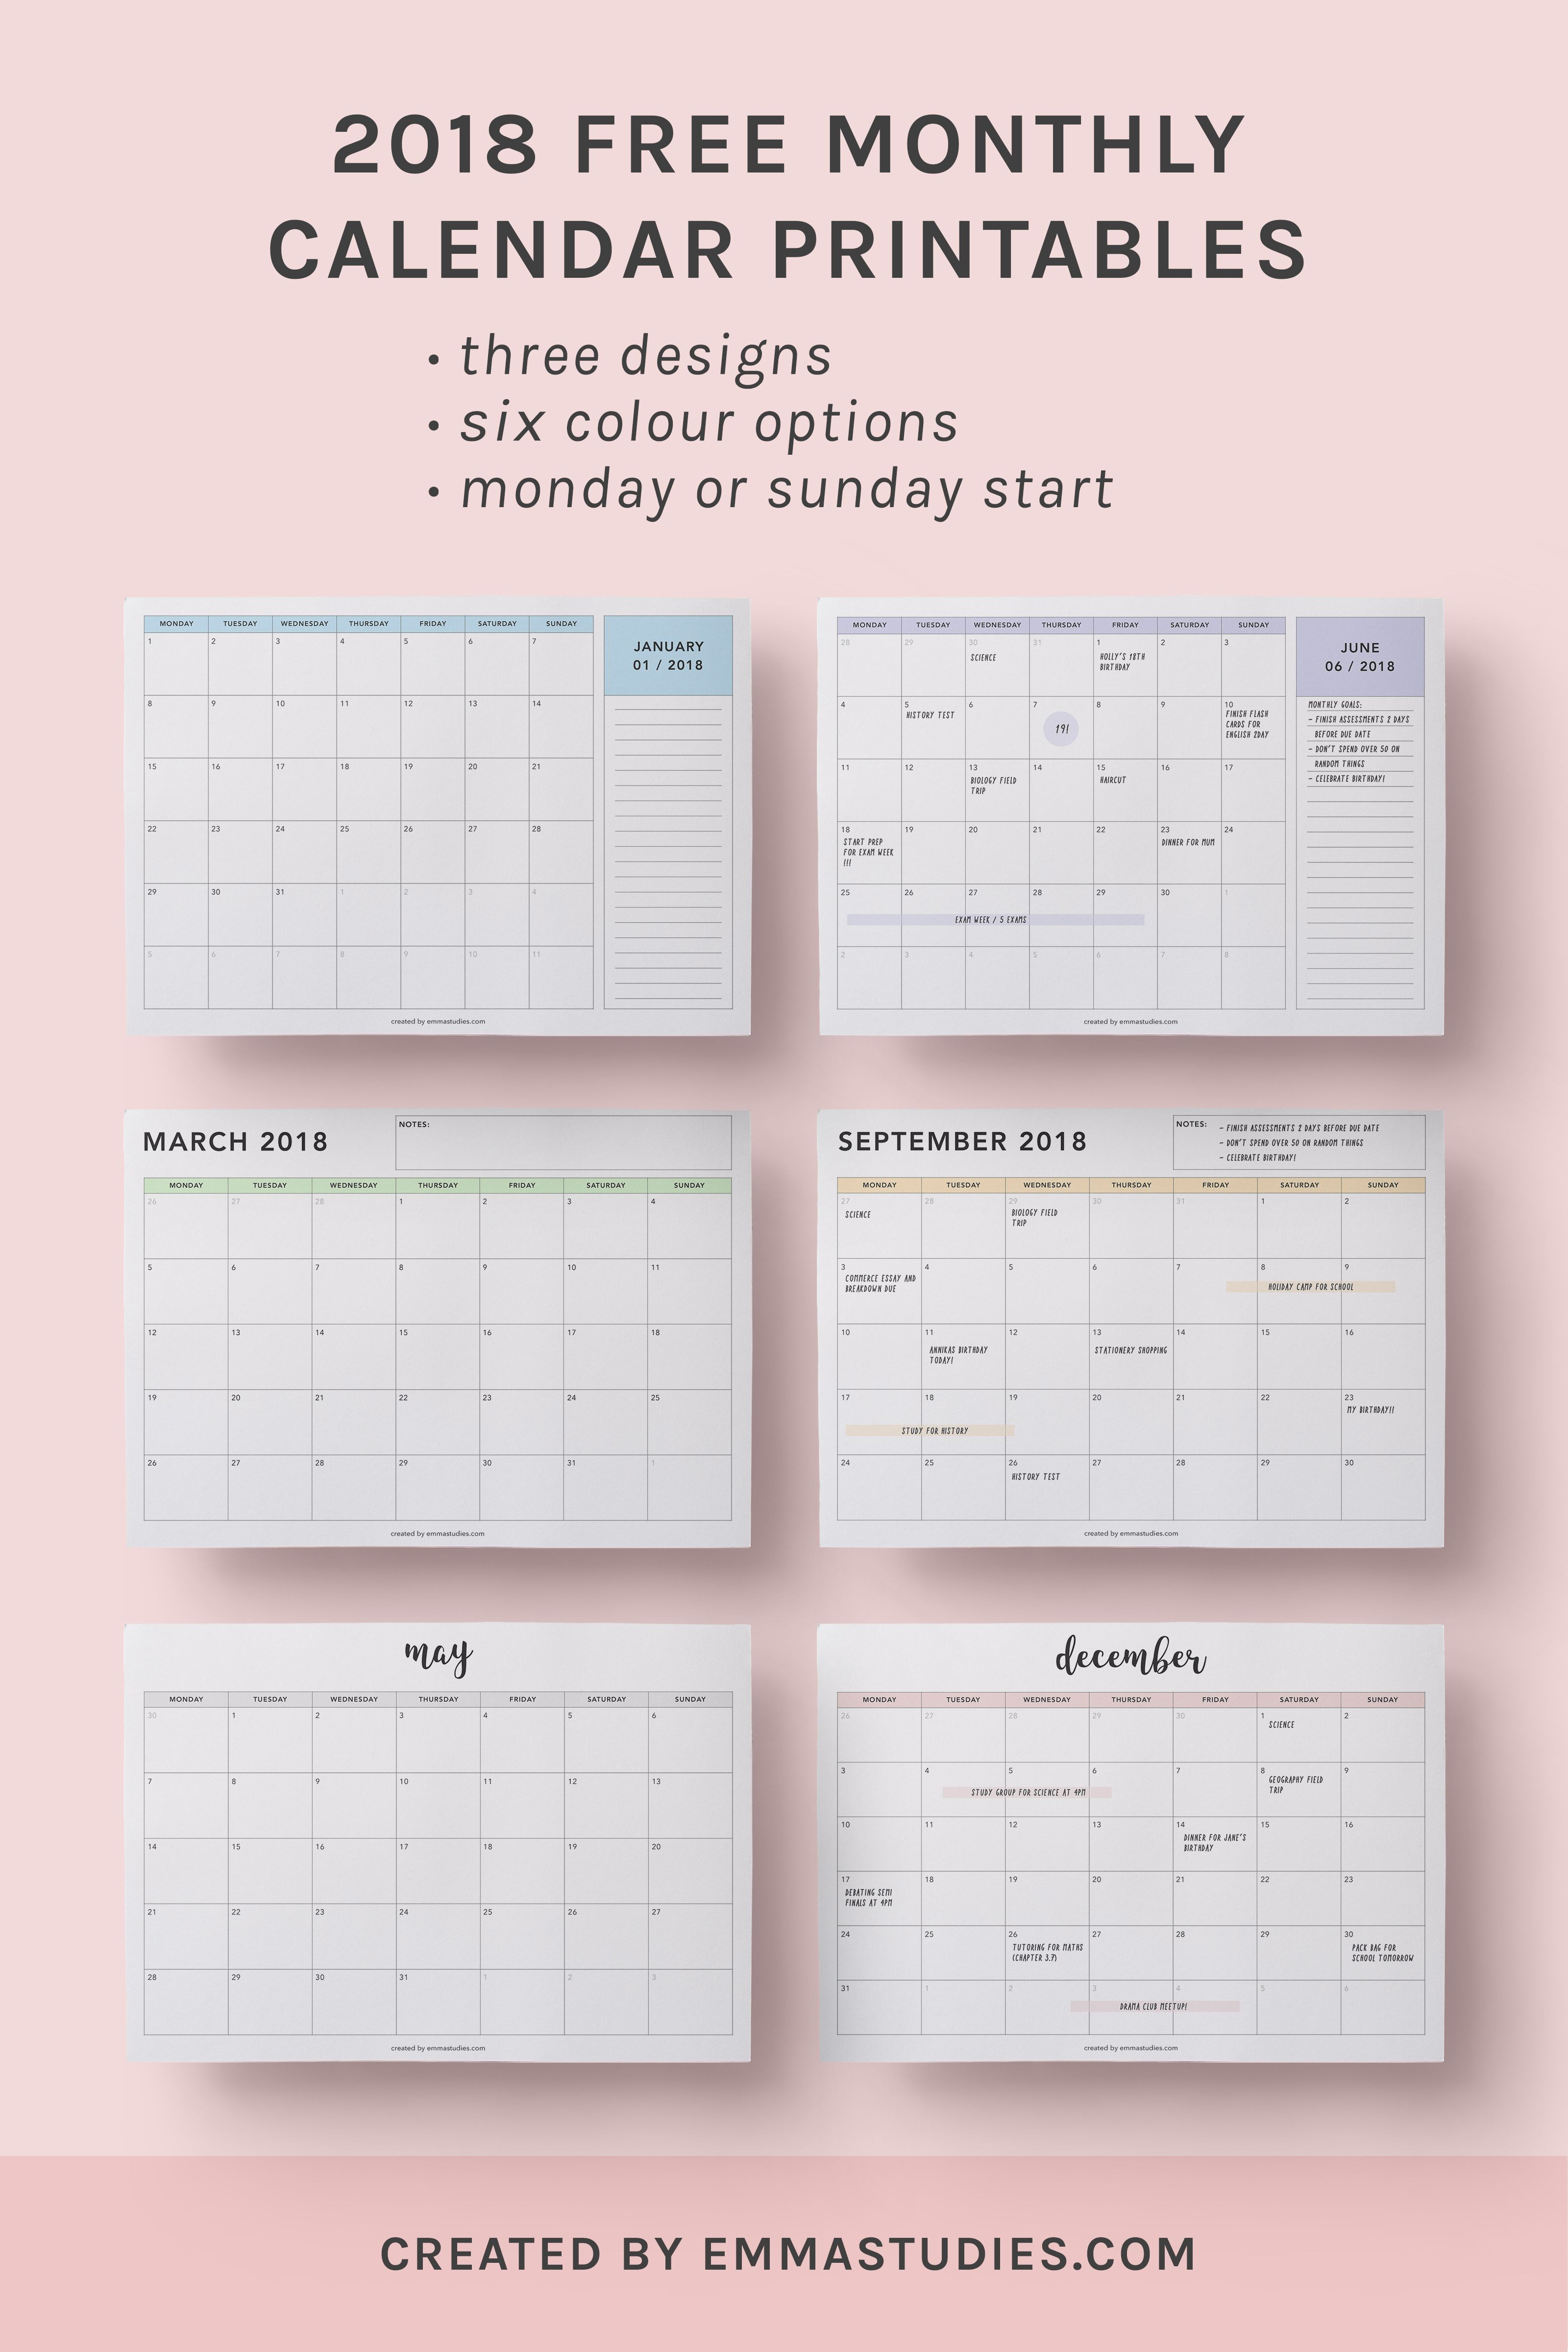 Imprimir Calendario Escolar 2017 Y 2019 Sep Más Recientemente Liberado 2018 Monthly Free Printable Calendars by Emmastu S Of Imprimir Calendario Escolar 2017 Y 2019 Sep Más Recientes Instituto Tecnol³gico De Gustavo A Madero